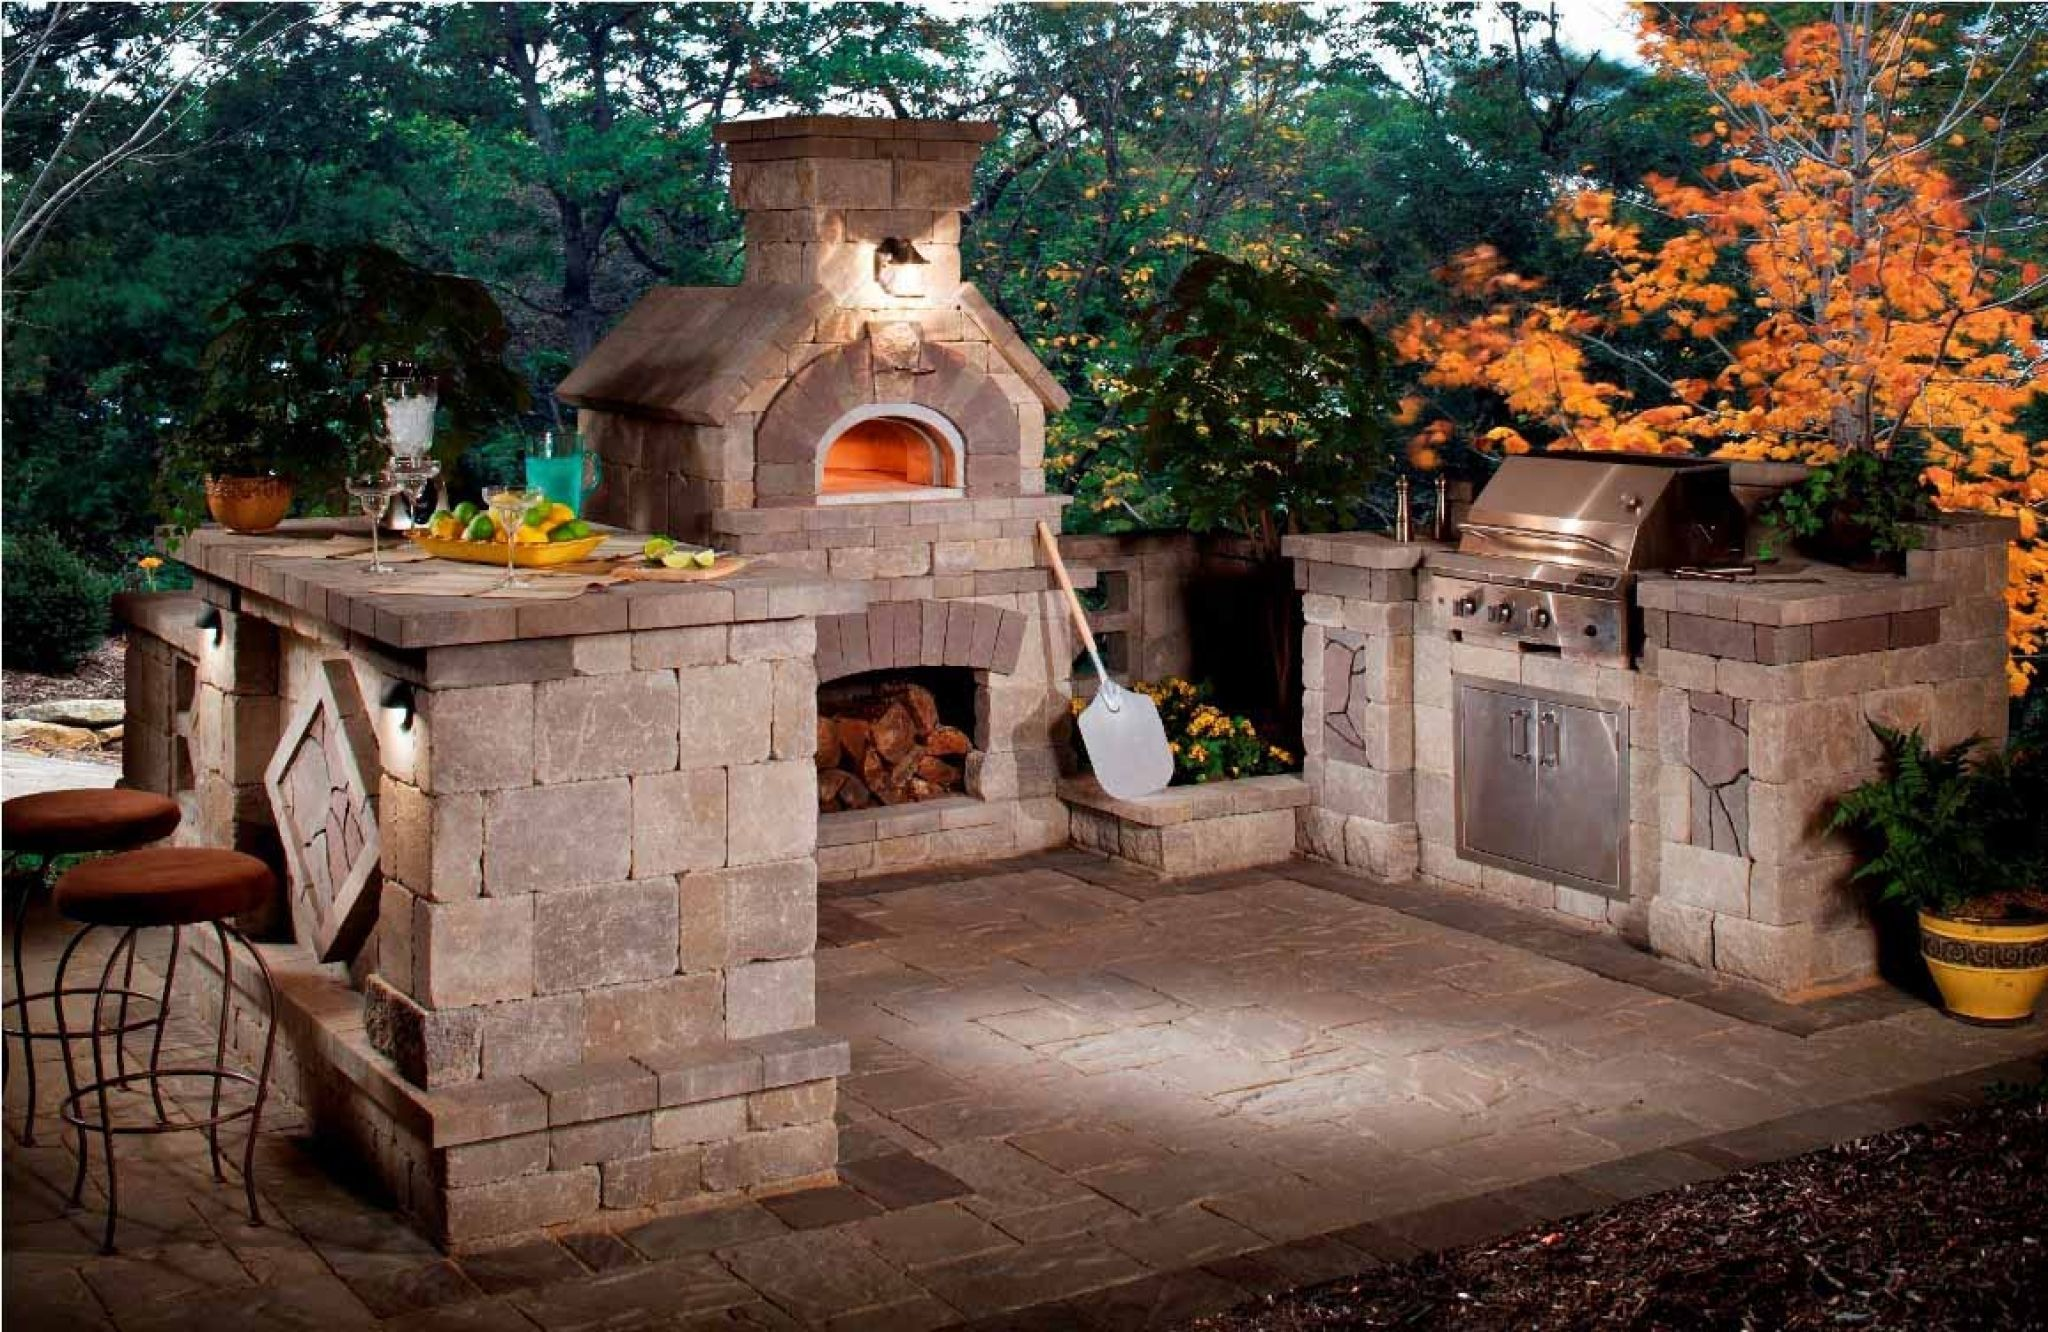 Cost Of Outdoor Kitchen And Fireplace In 2020 Outdoor Kitchen Design Outdoor Fireplace Designs Outdoor Kitchen